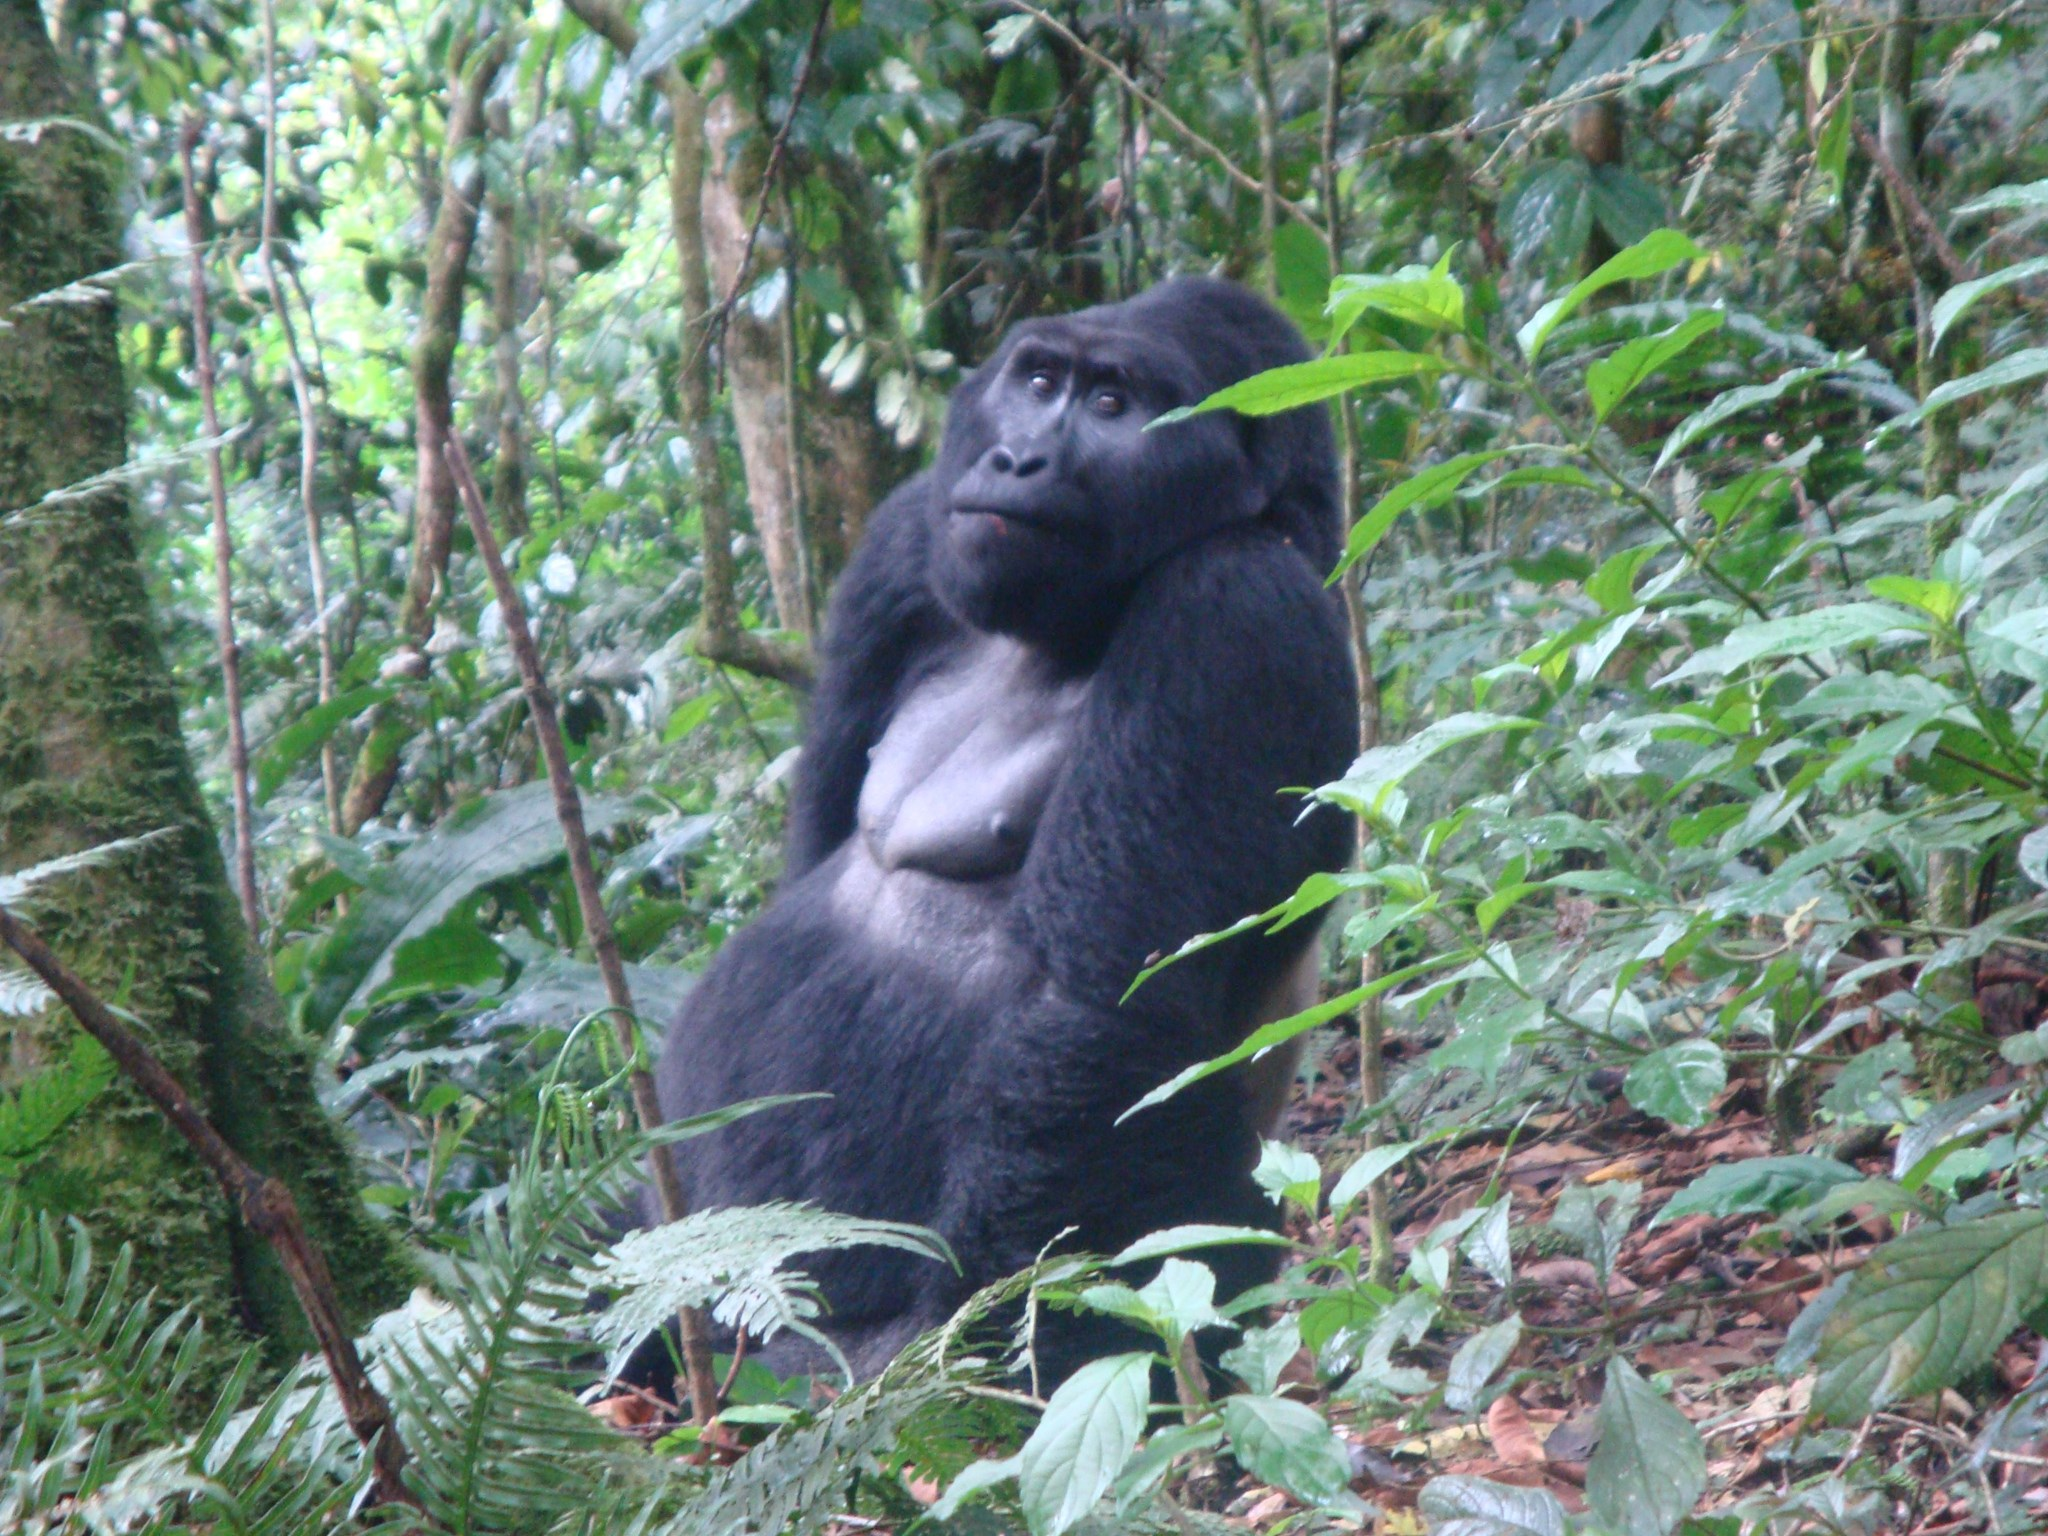 Paul would have loved to be face to face with this magnificent silverback gorilla